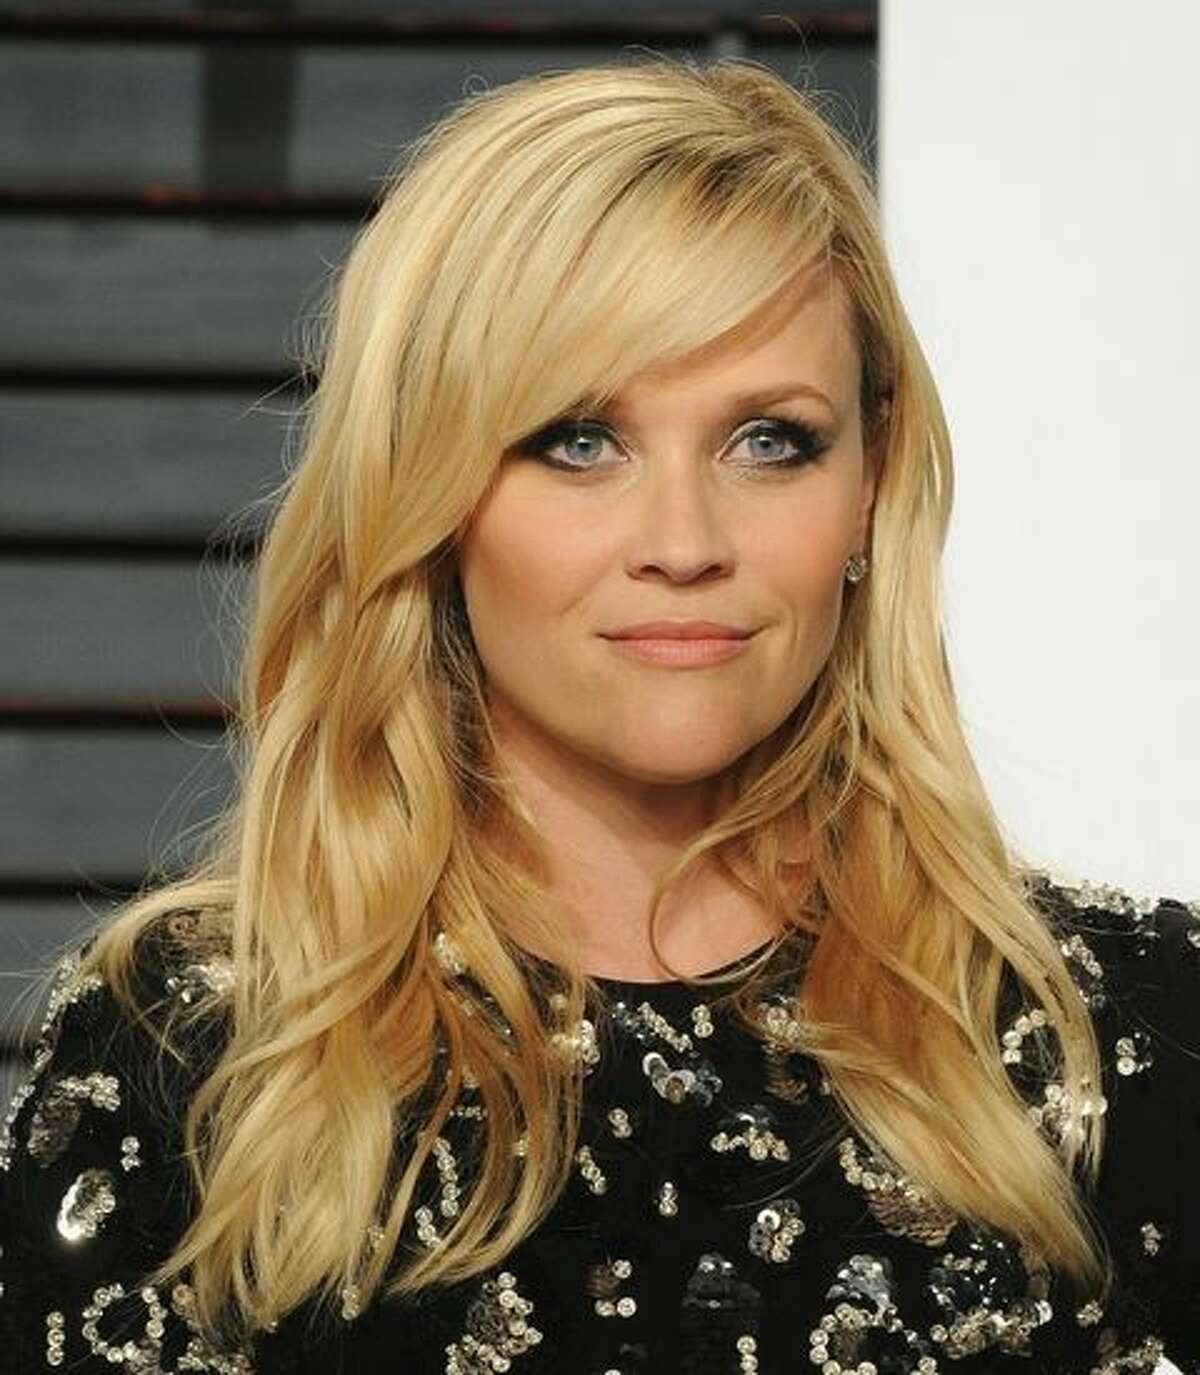 2) Reese Witherspoon